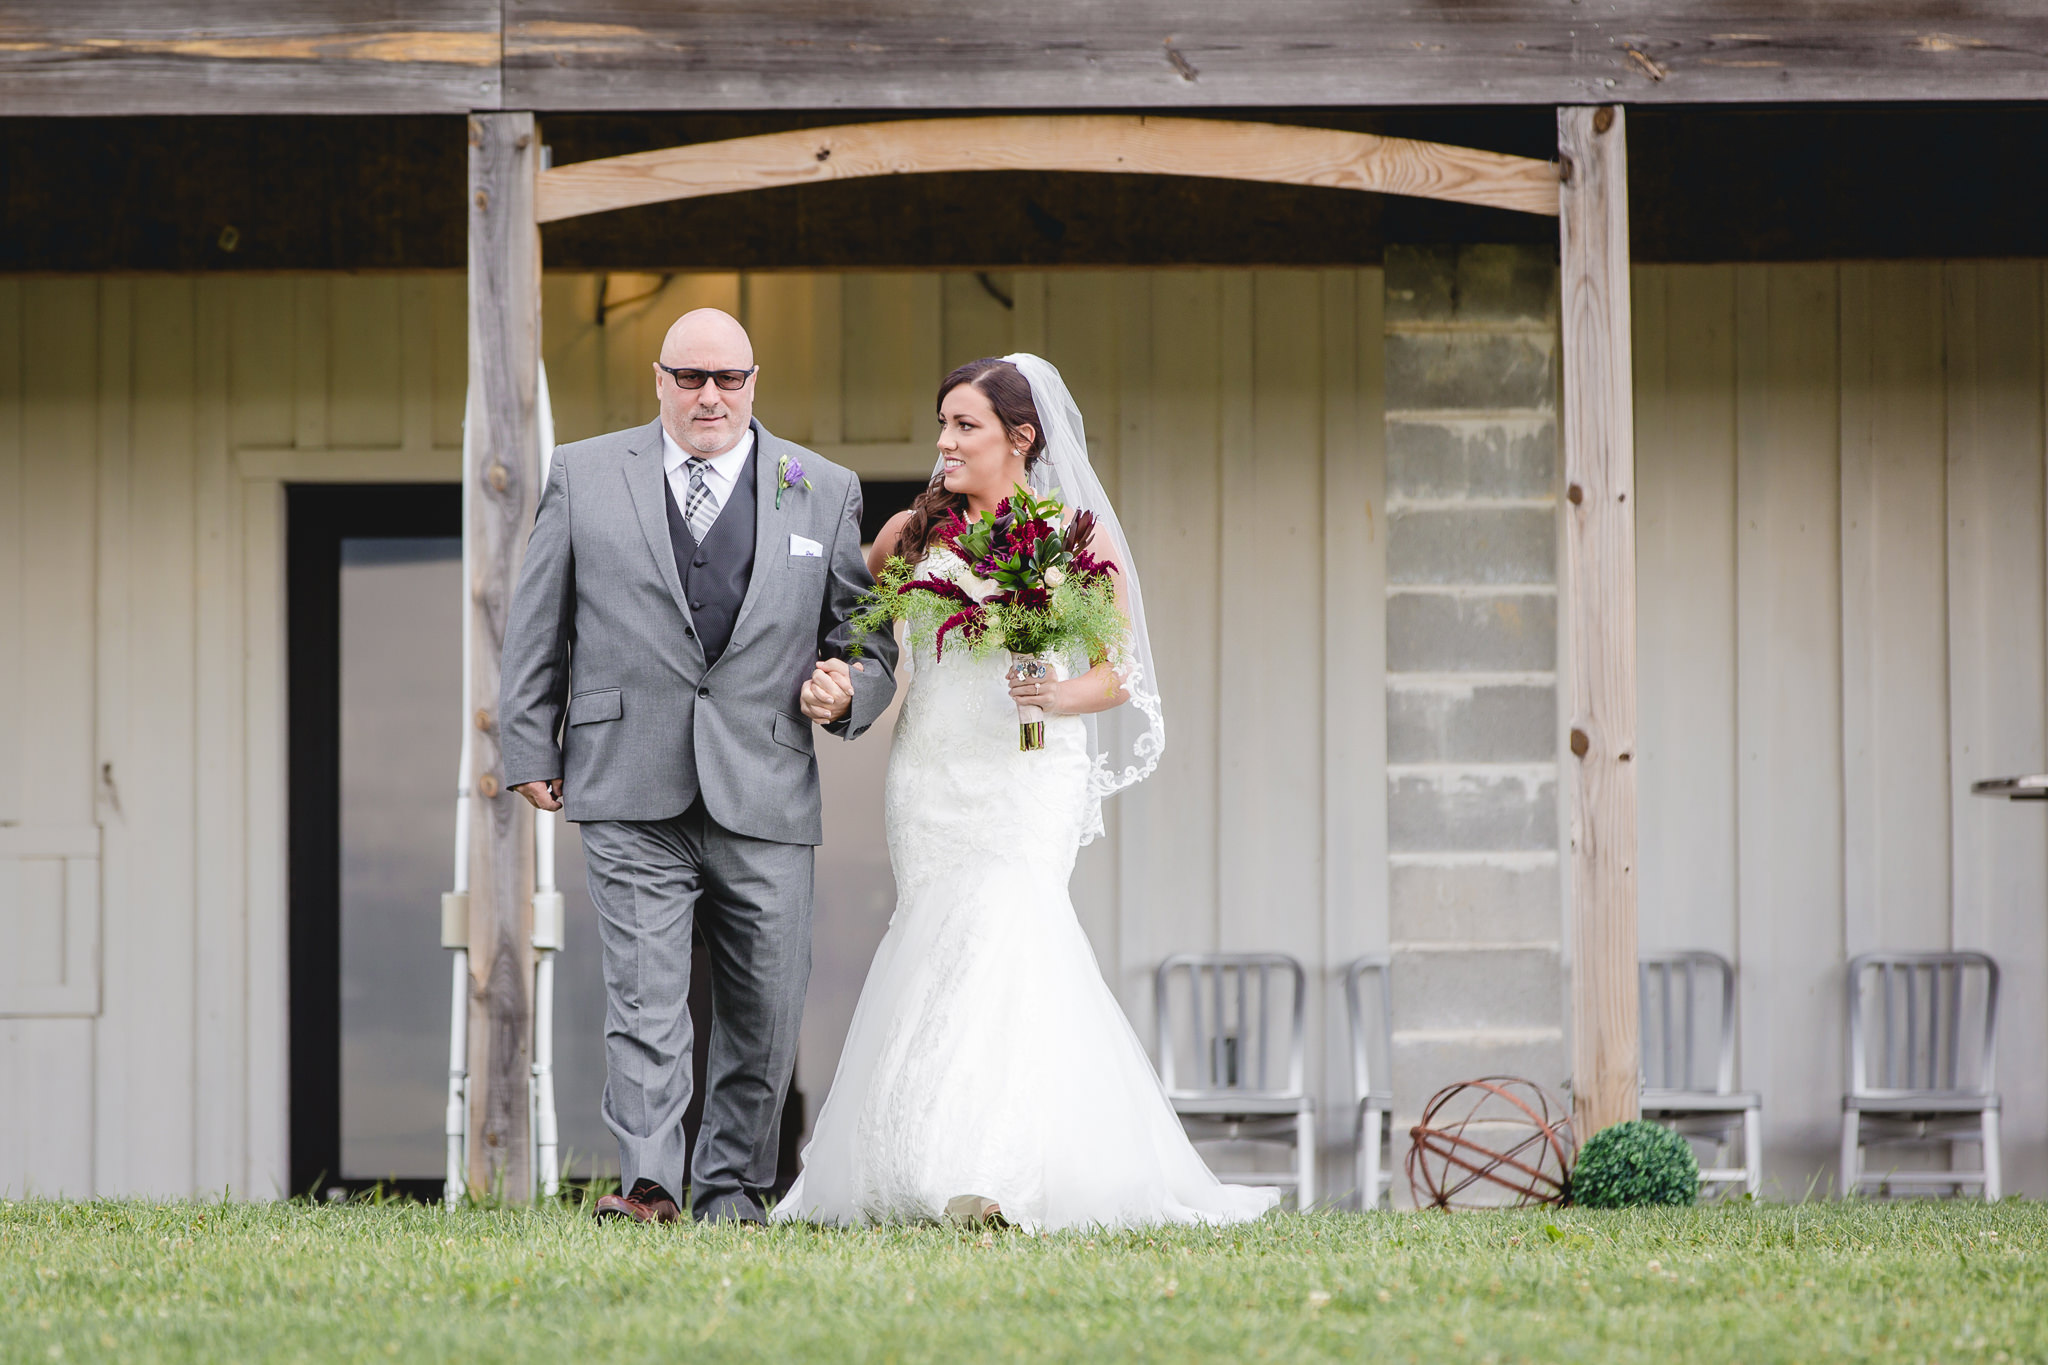 Bride walks down the aisle with her father at White Barn